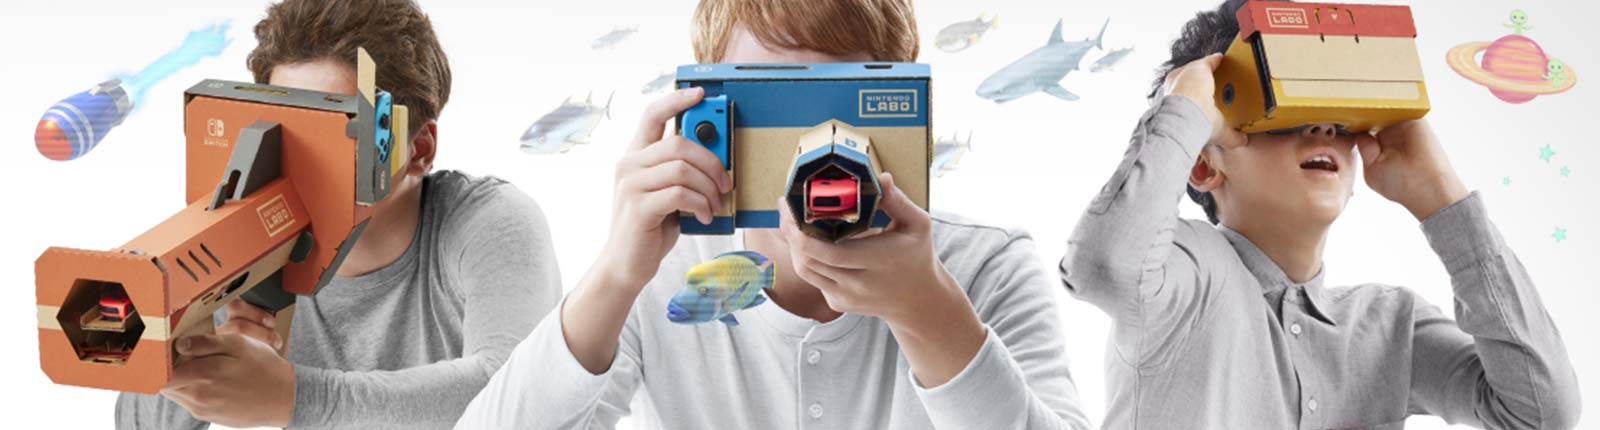 Nintendo Labo: Toy-Con 04 VR-Set Review